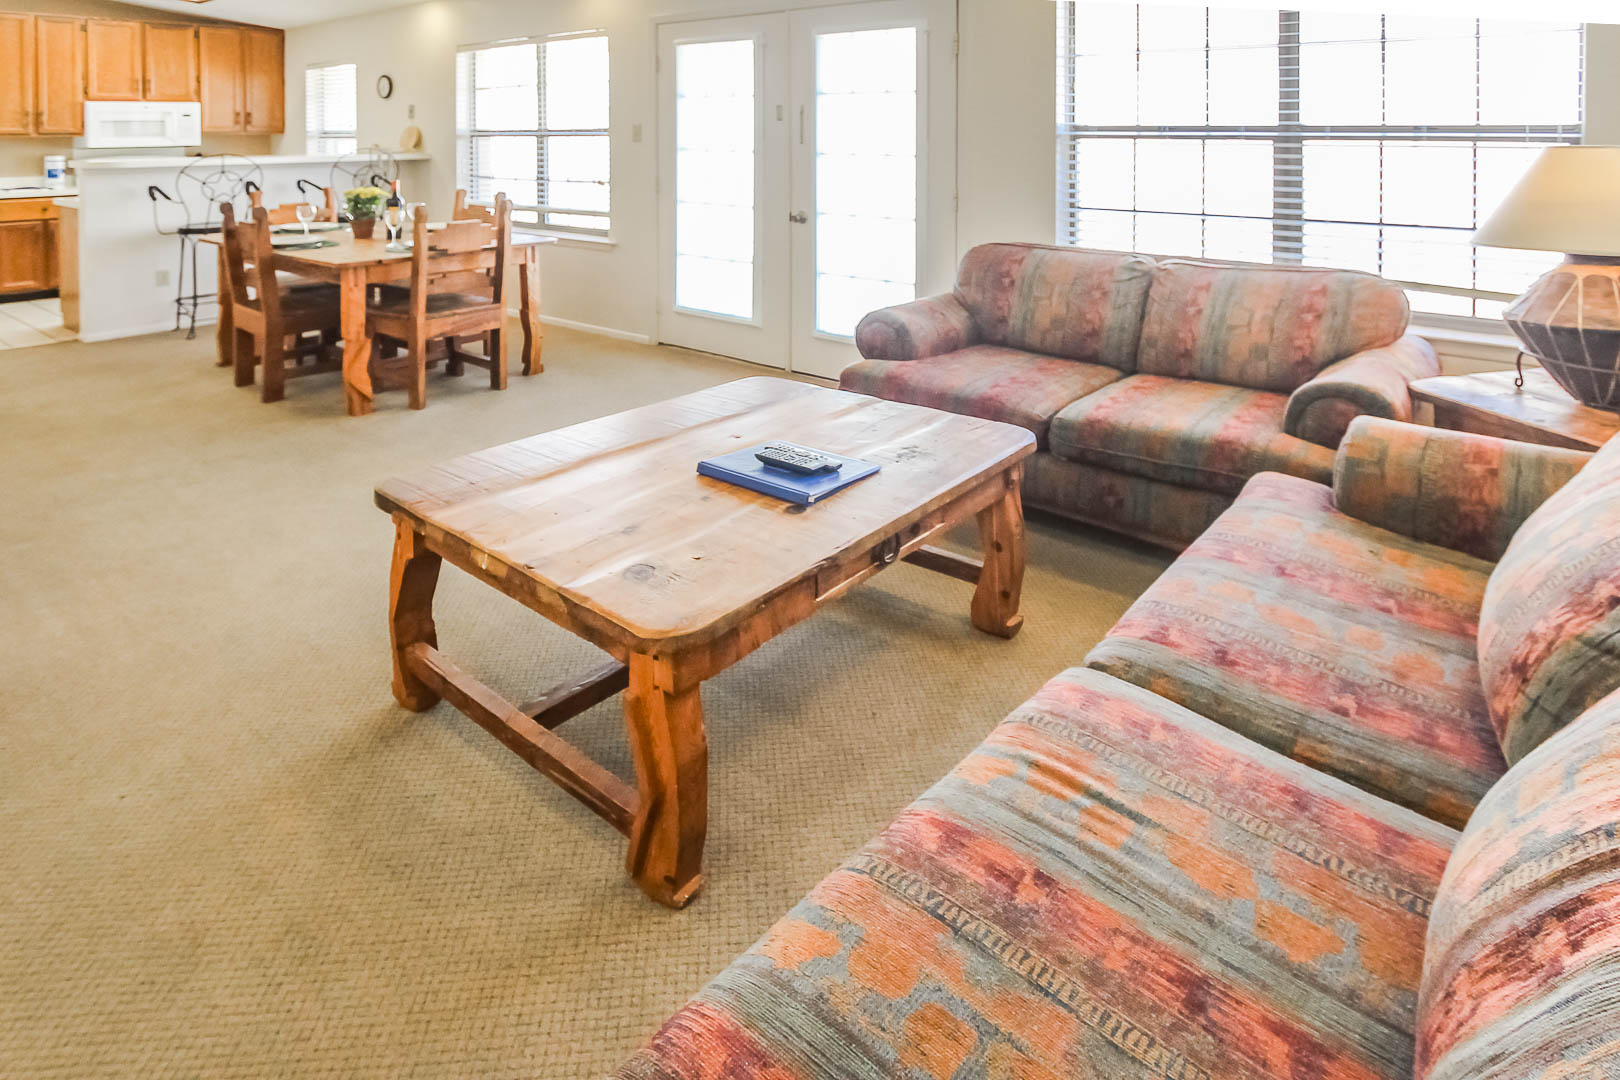 A spacious living room and kitchen  at VRI's Vacation Village at Lake Travis in Texas.